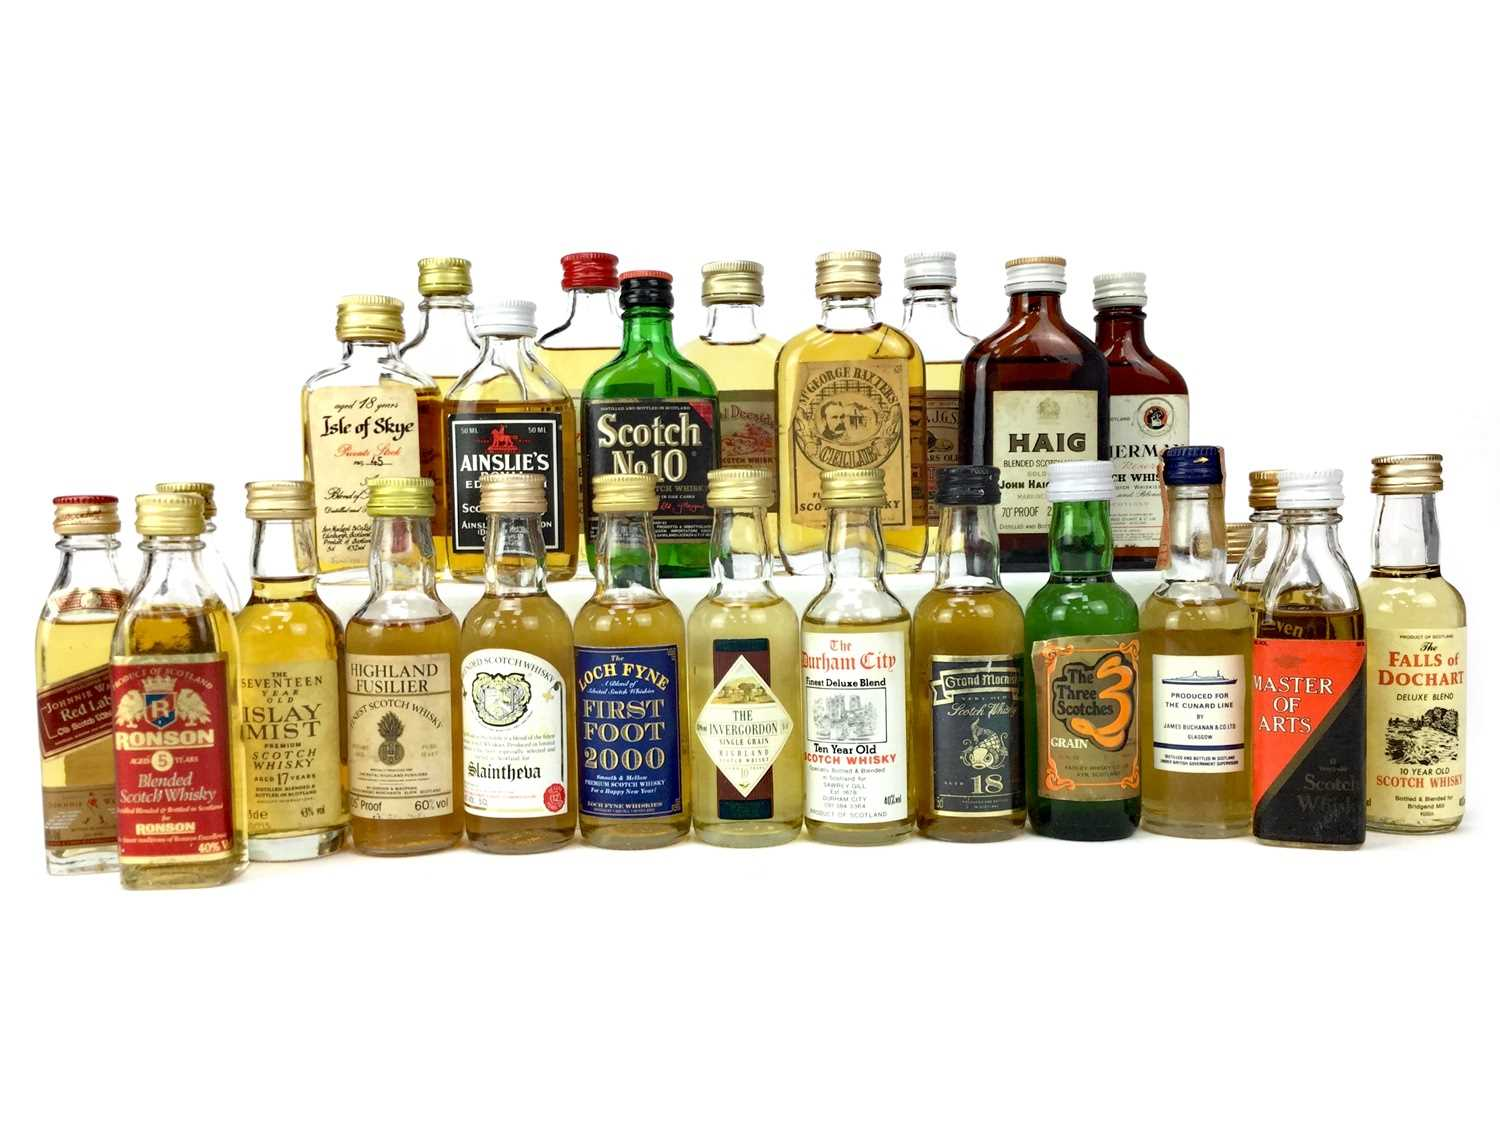 Lot 423-EIGHTY-SIX BLENDED SCOTCH WHISKY MINIATURES